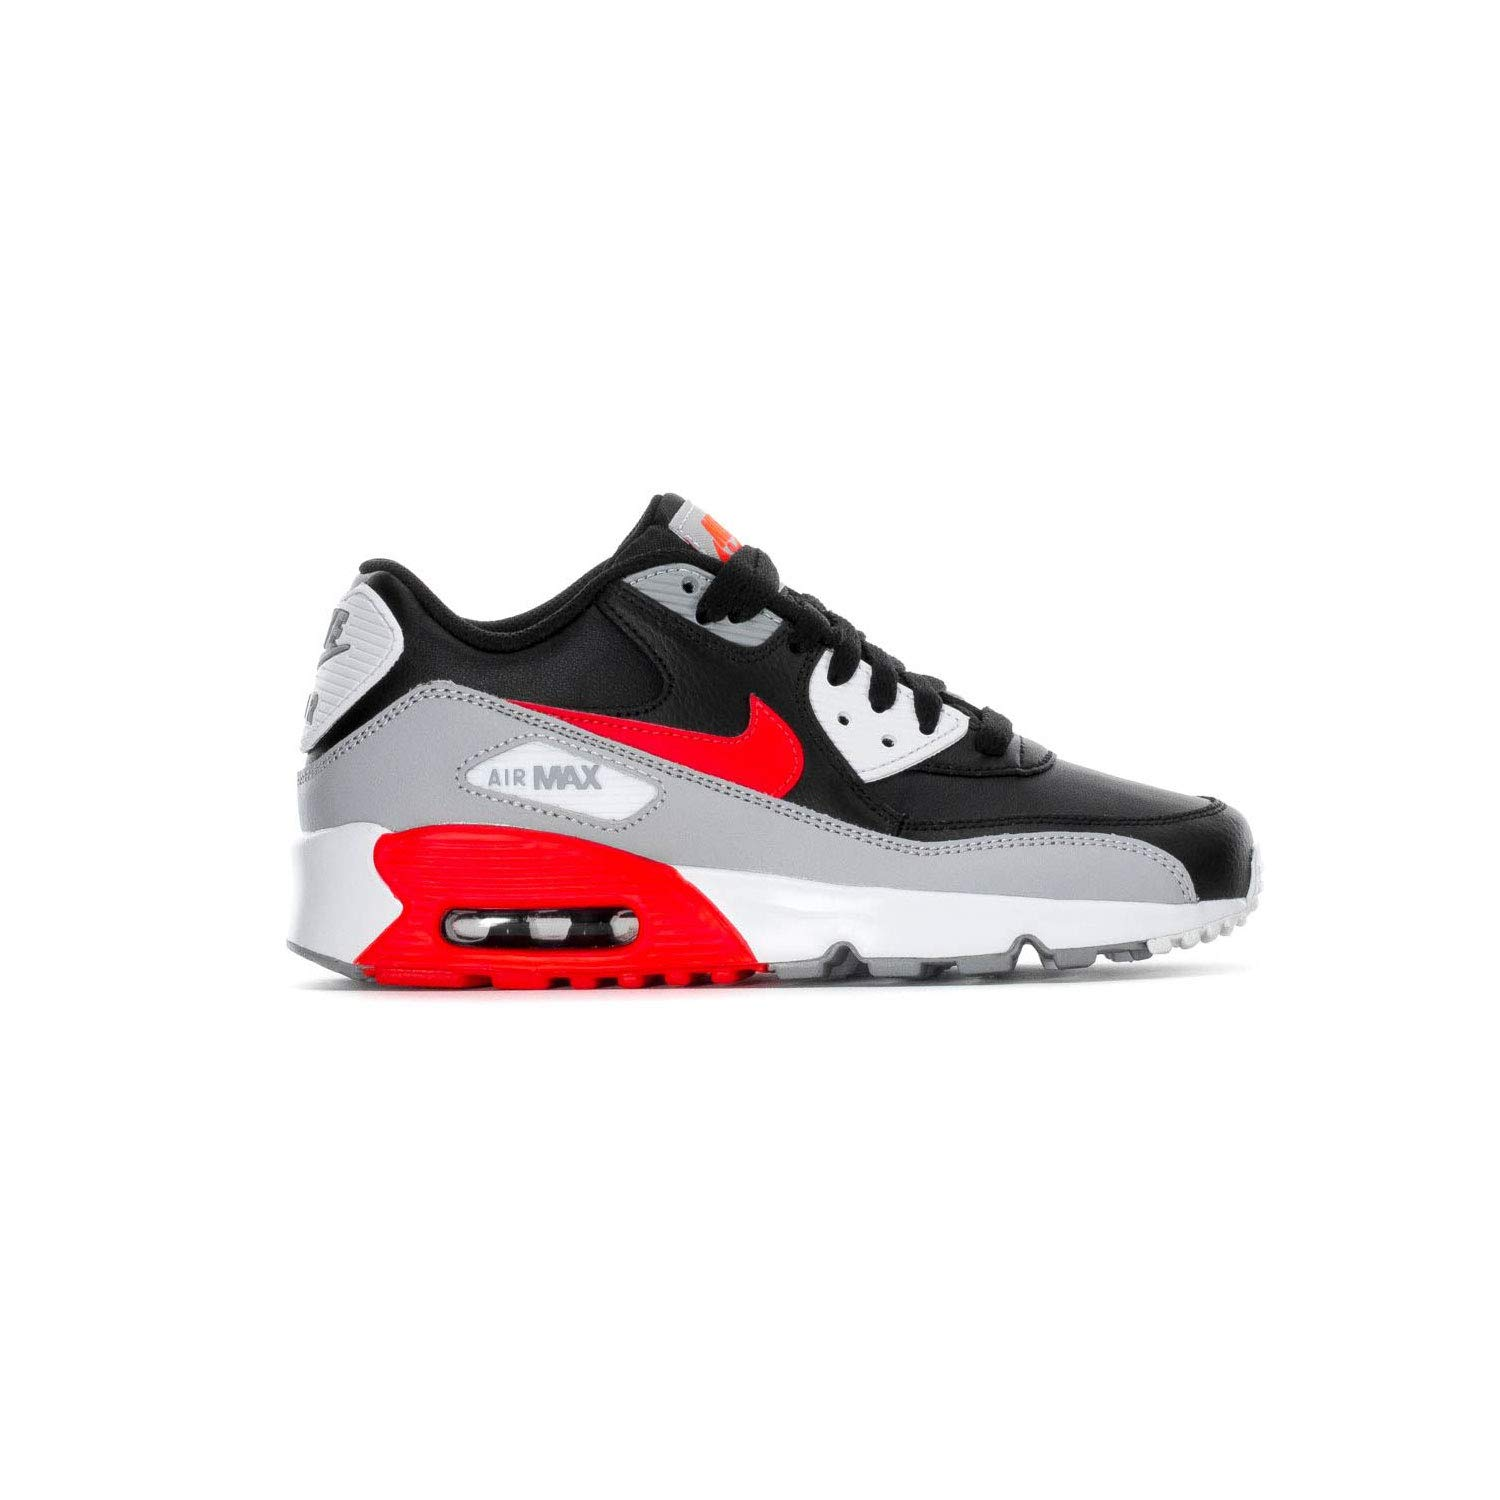 half off e0b7e 0d49f Galleon - NIKE Air Max 90 LTR (Kids)